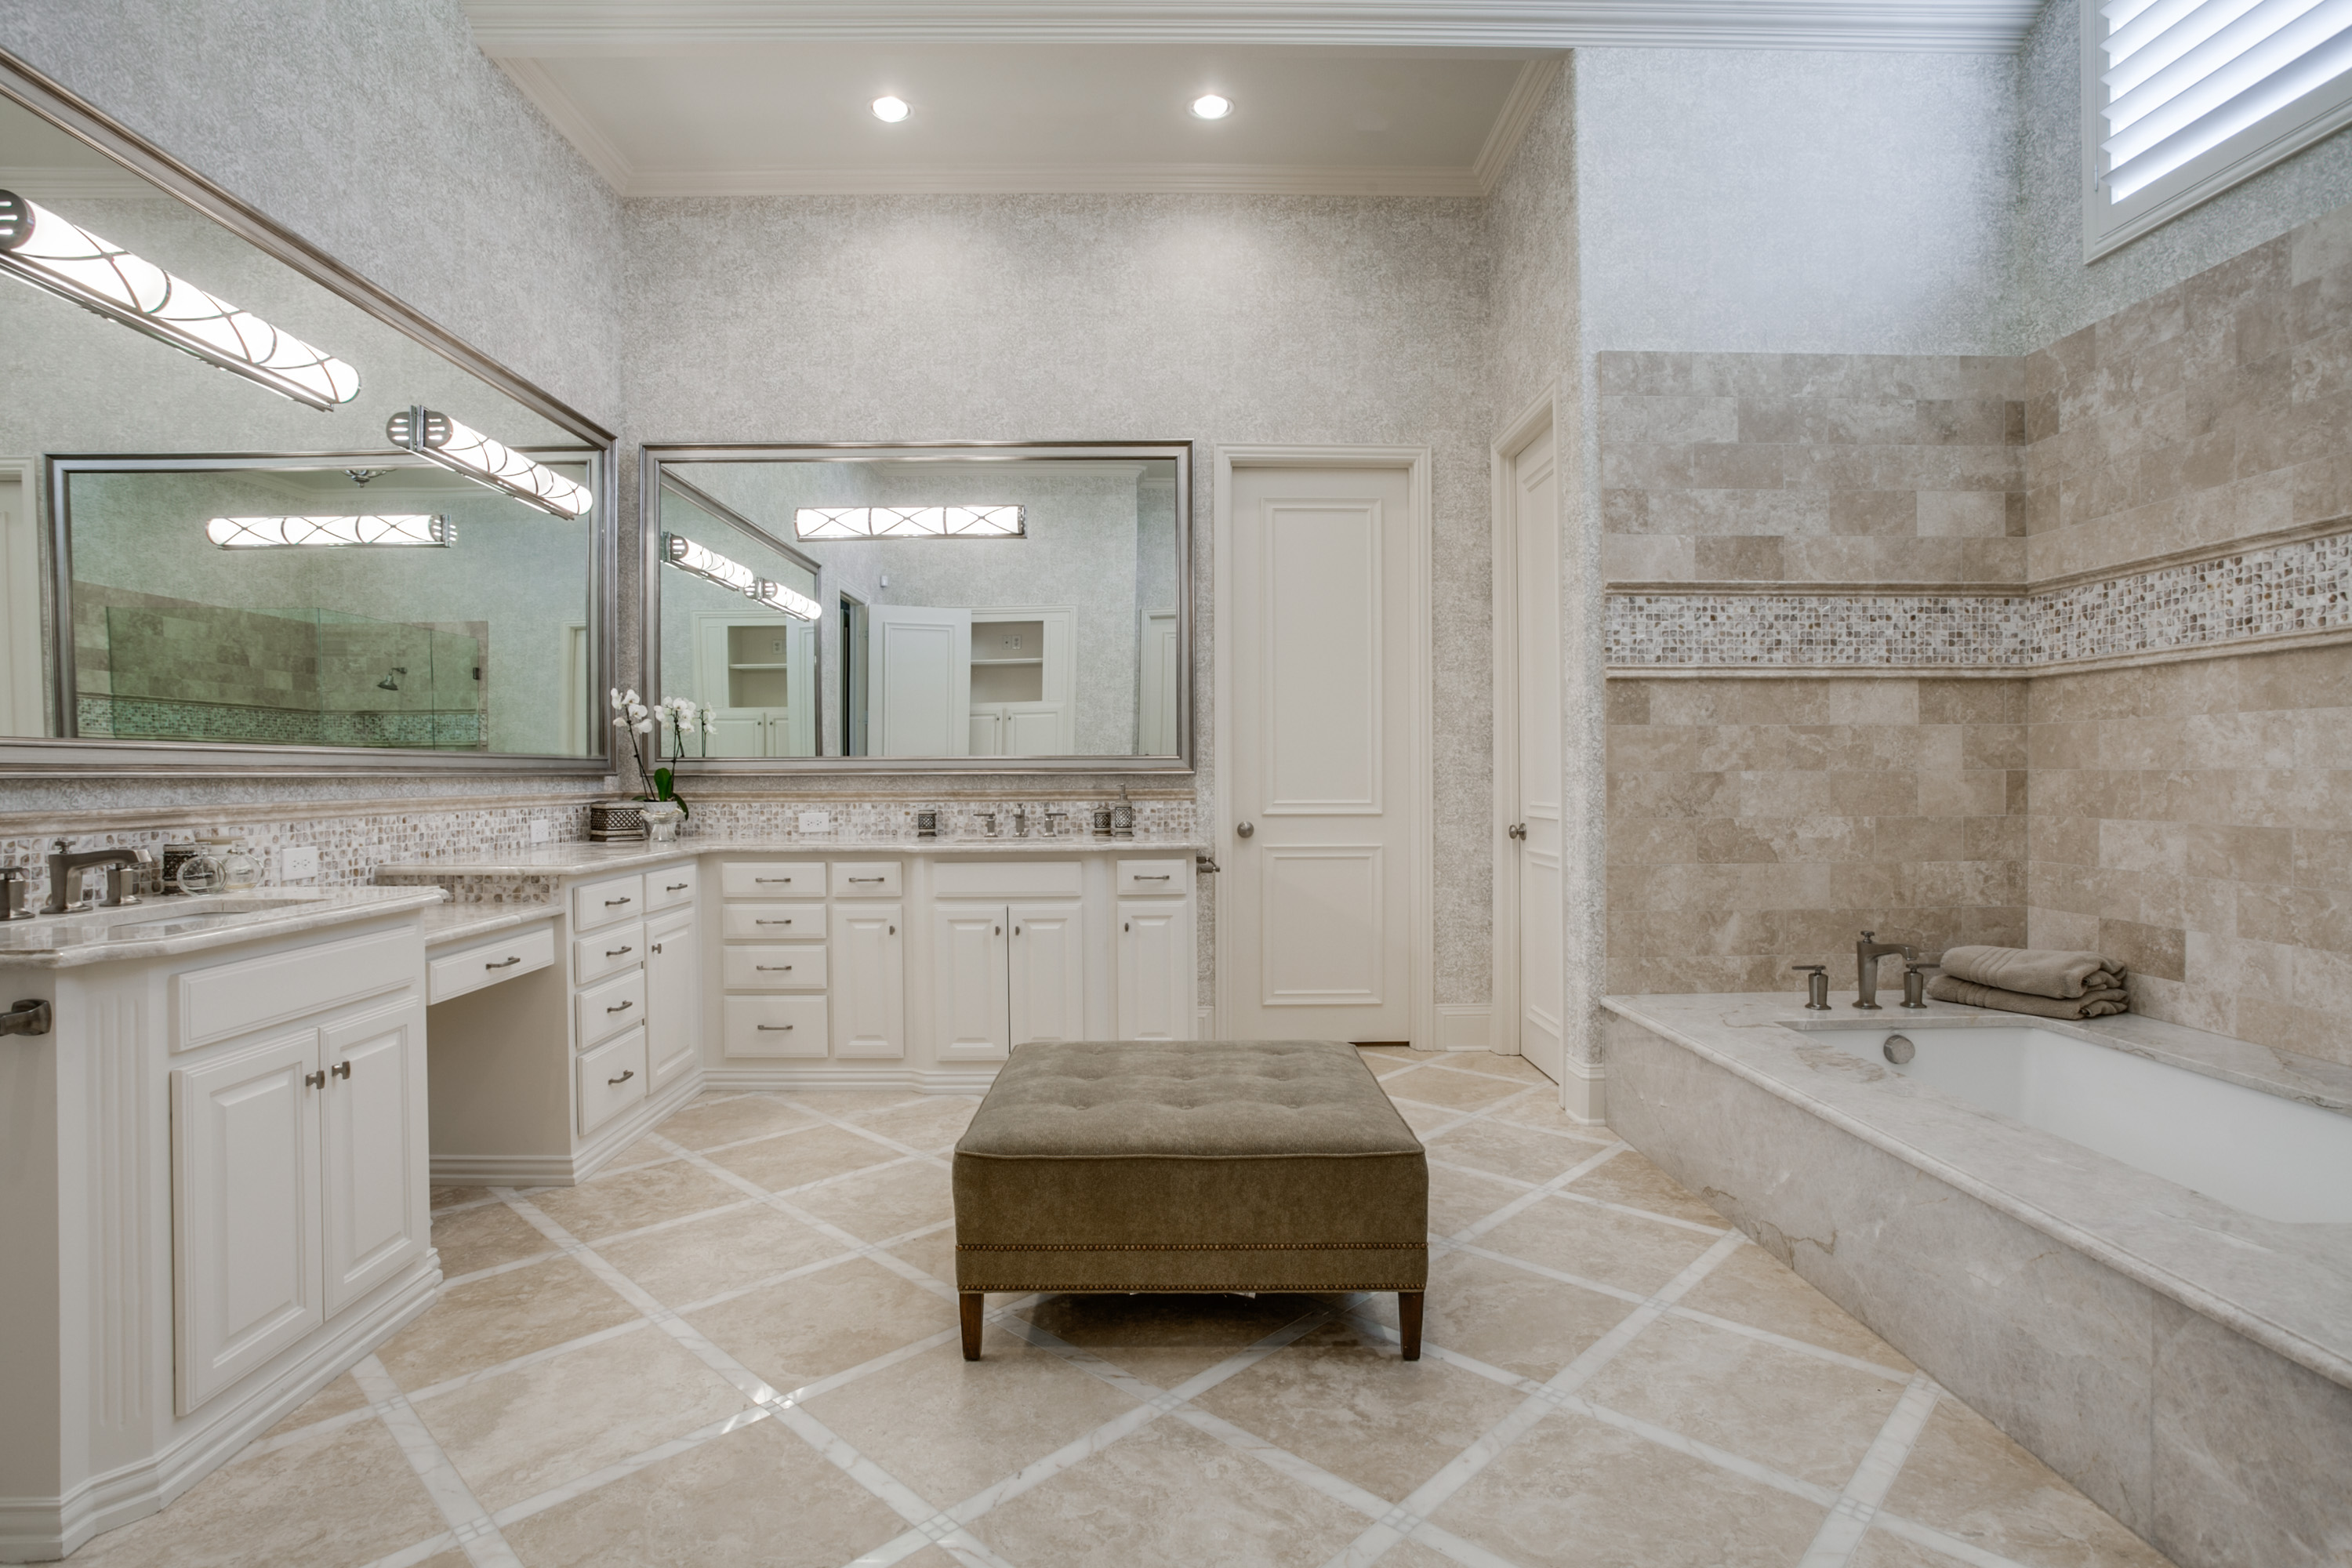 Plano Bathroom Remodeling Jwilliams Construction & Remodeling Inc Our Work  Bathroom .